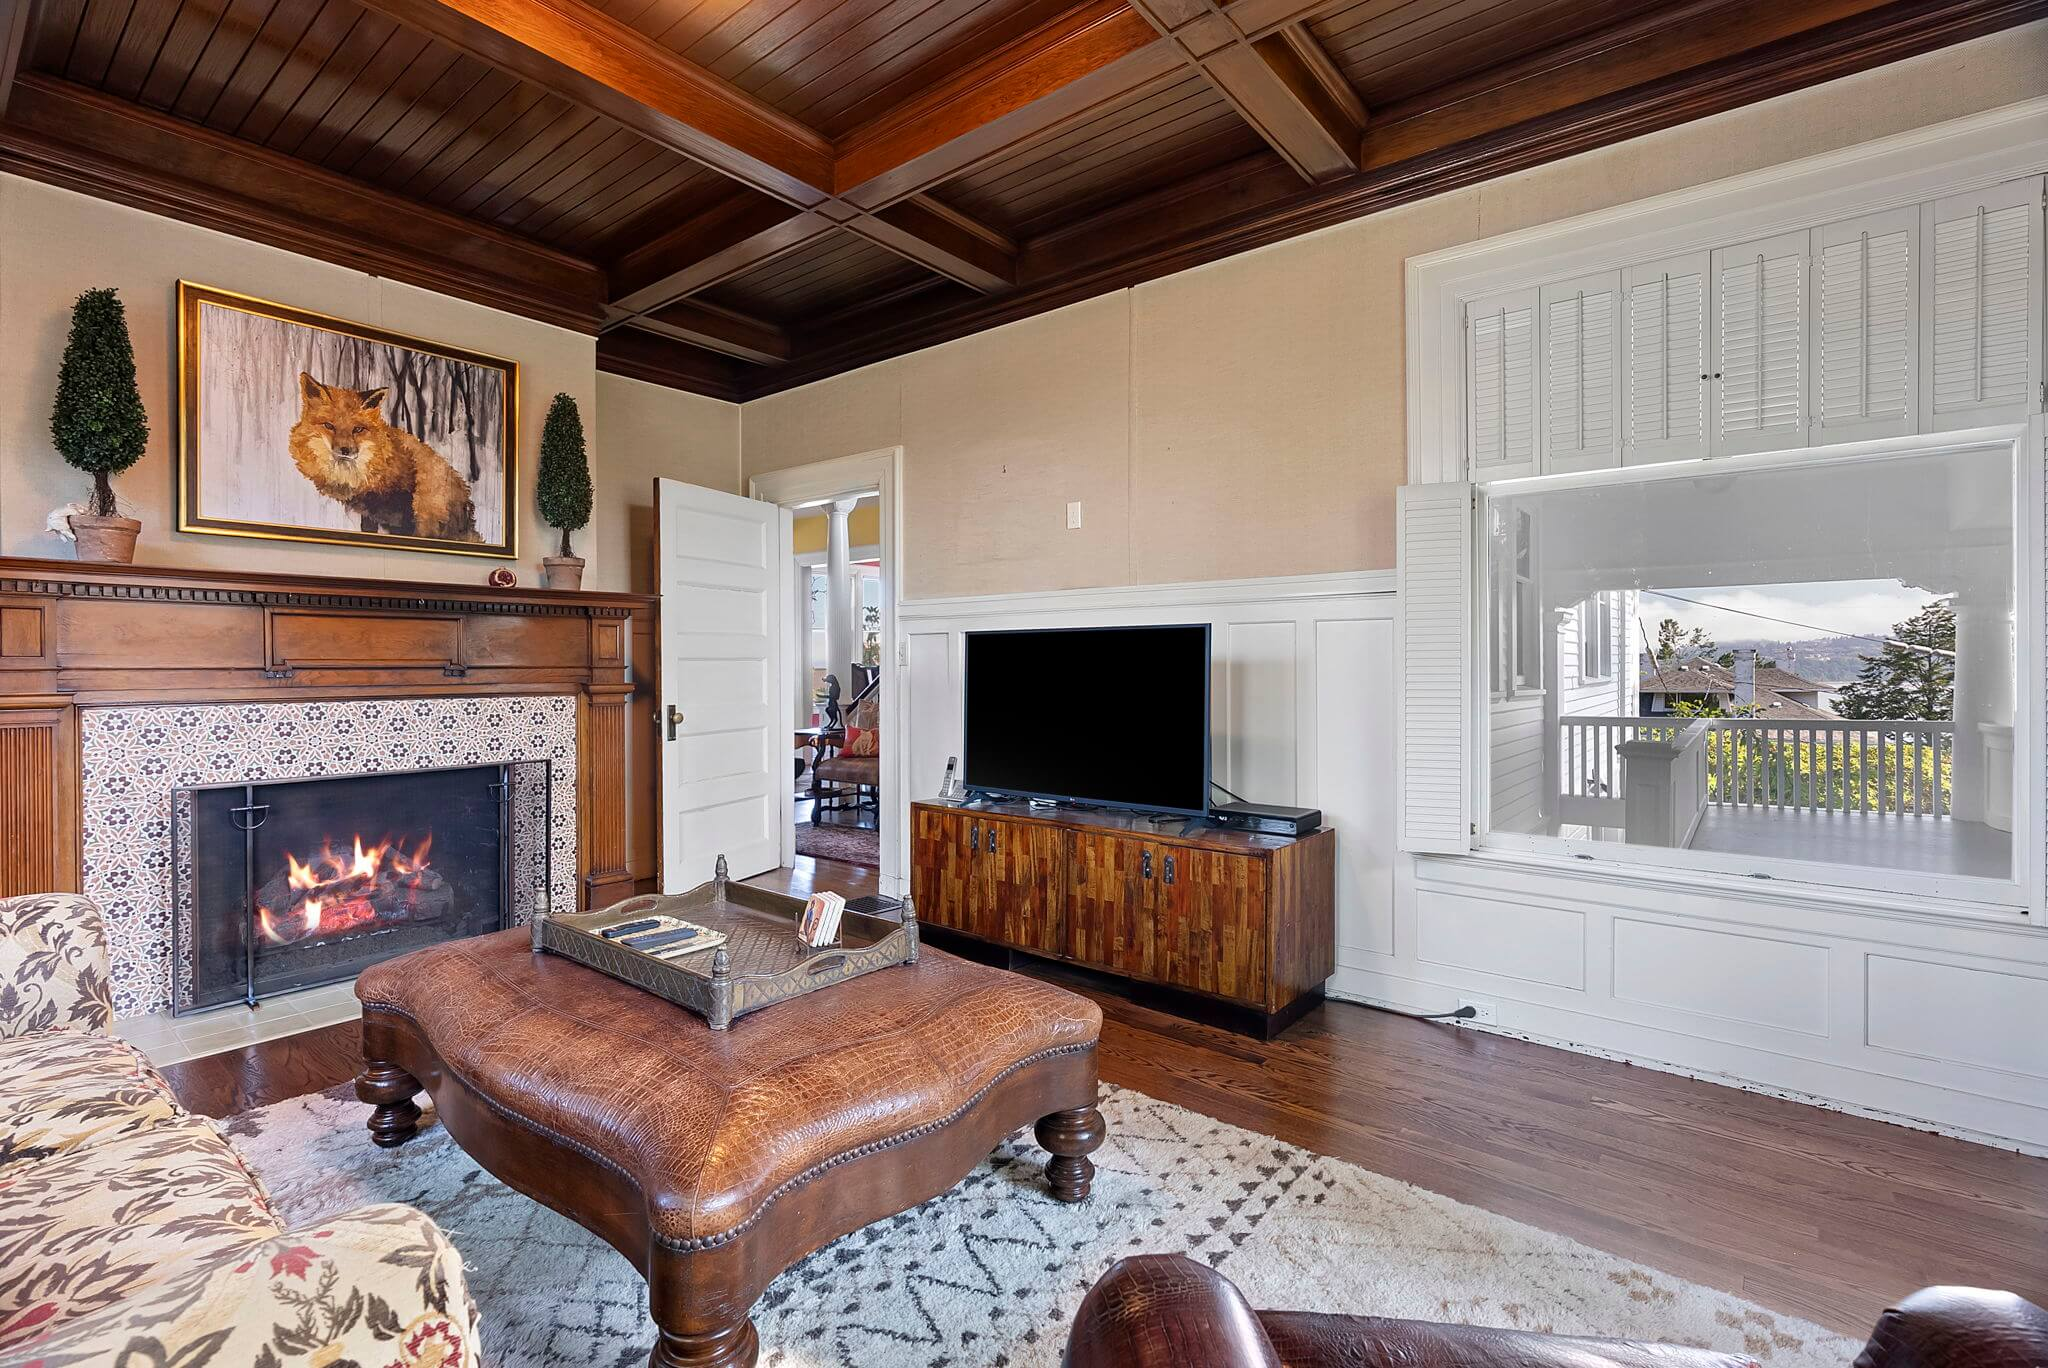 Library features a large fireplace with original mantle and vintage tile surround